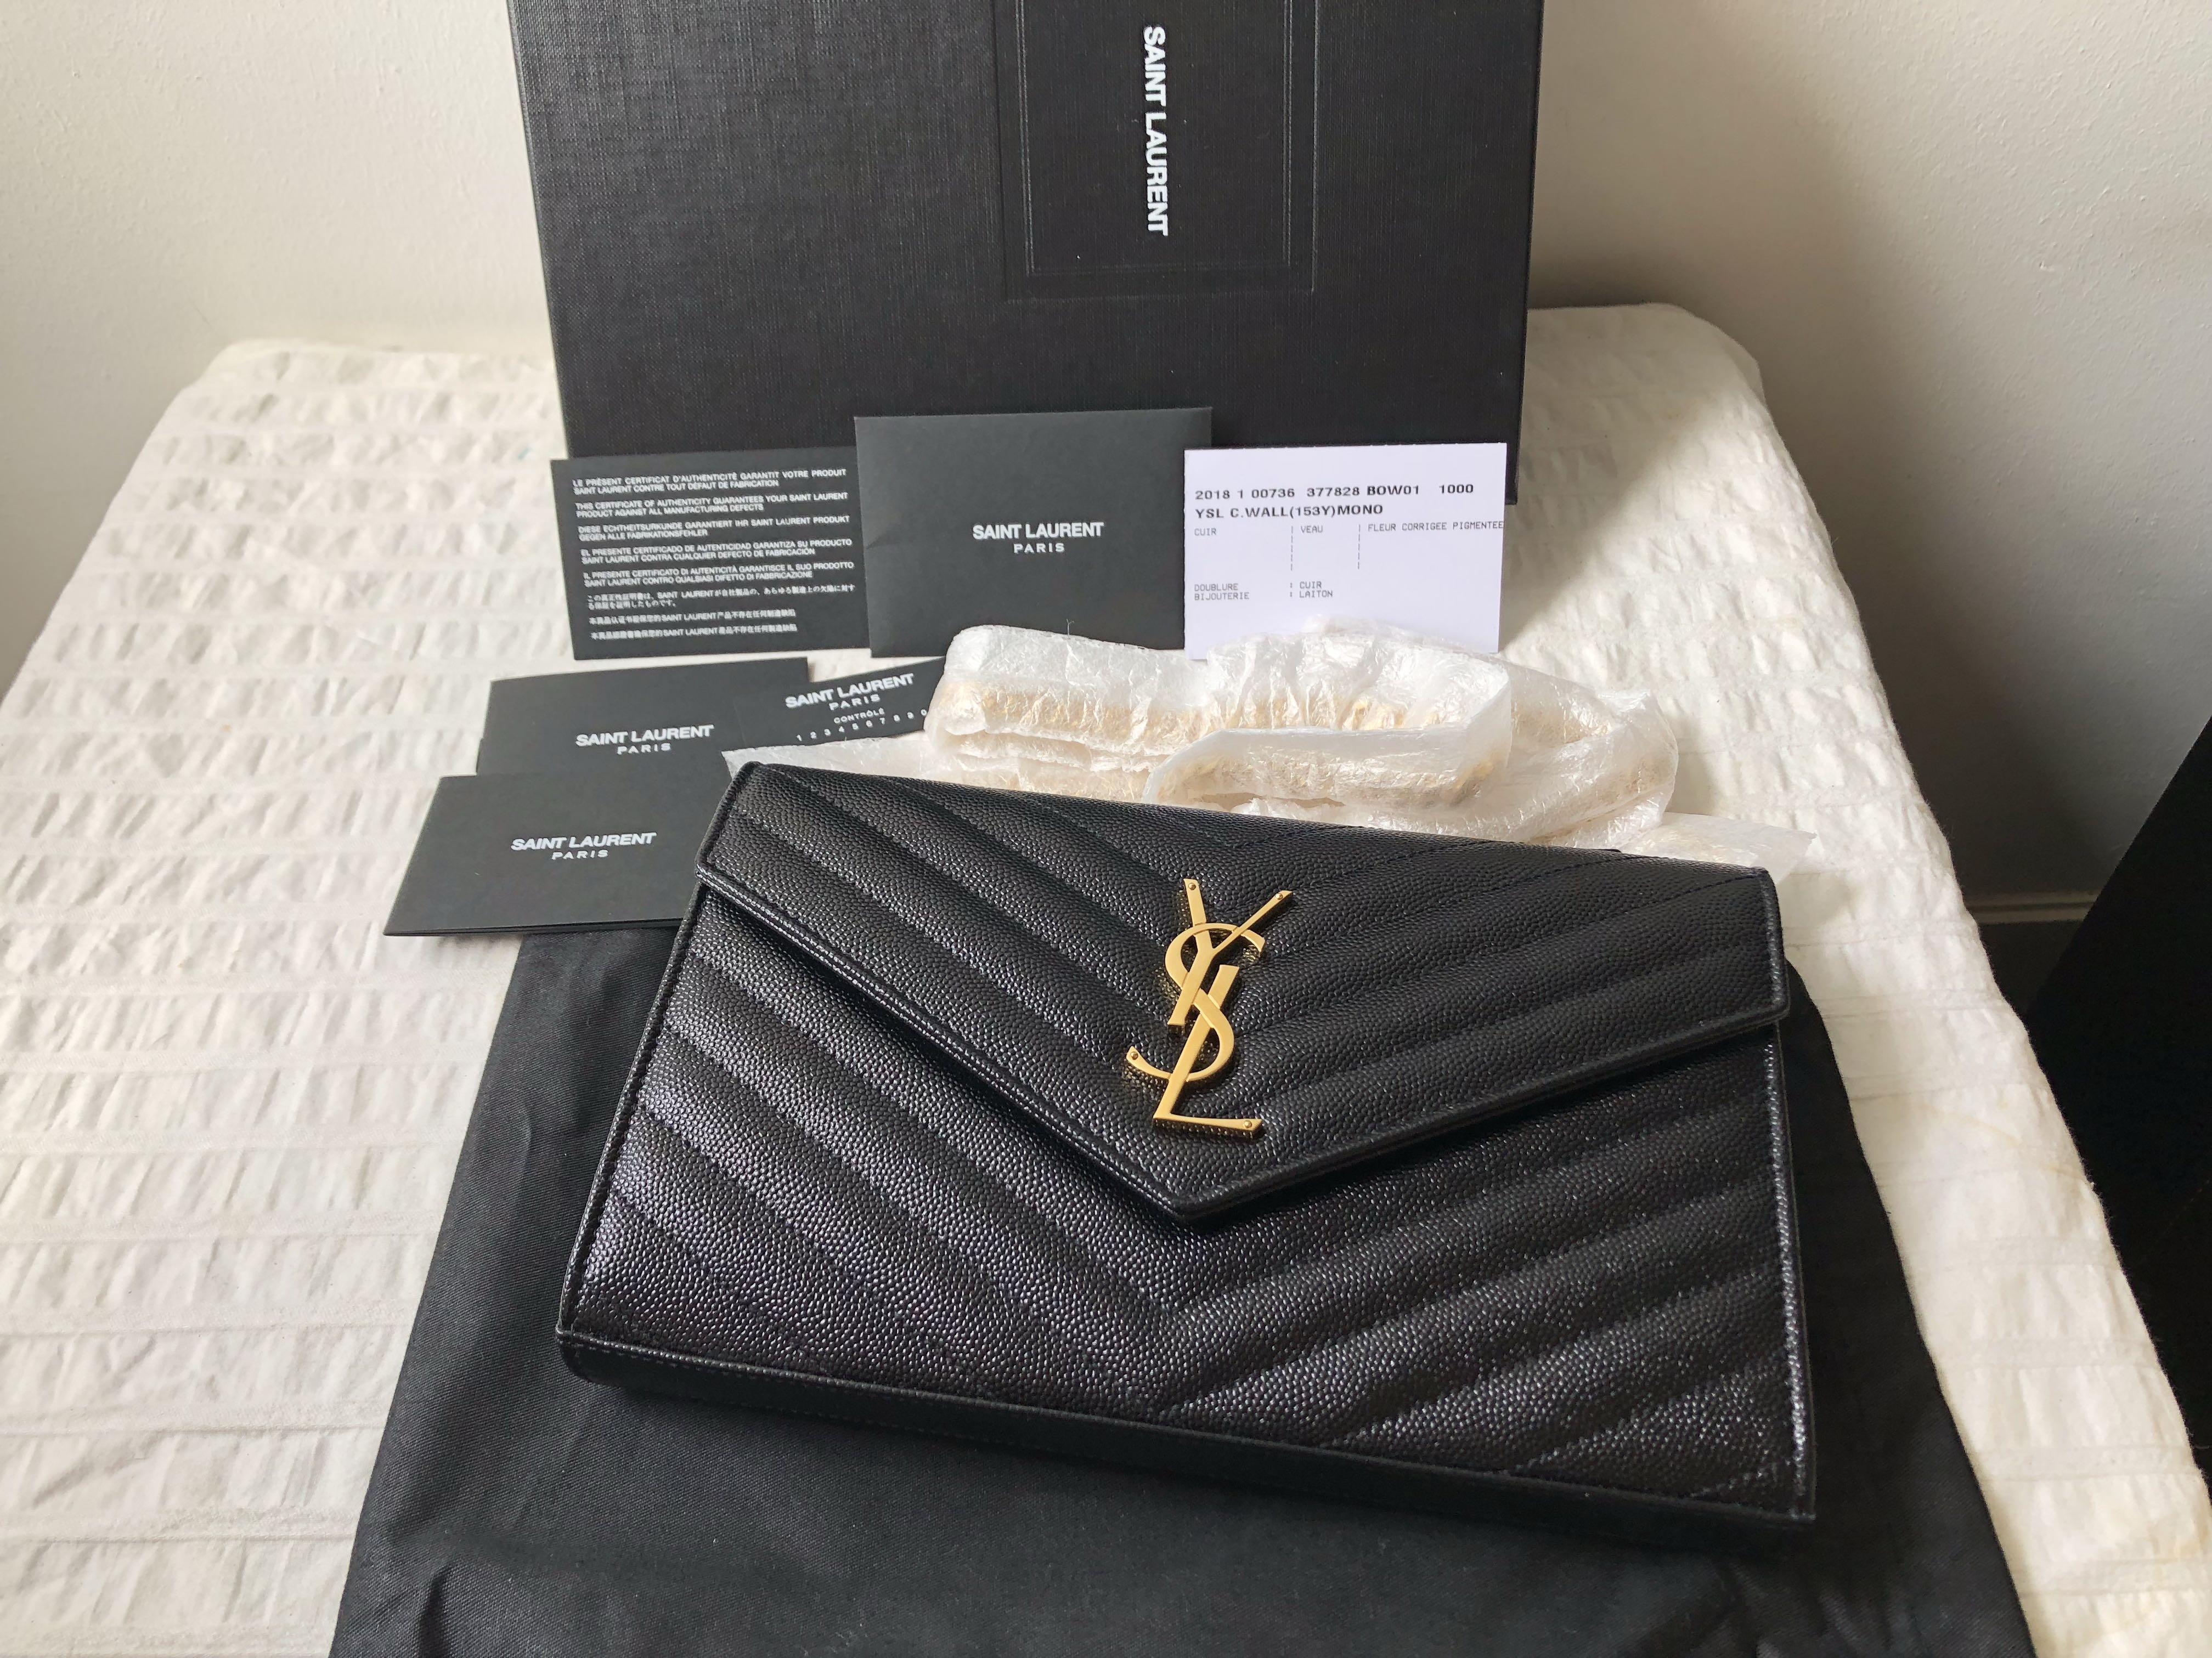 1dfa0a98fef2  New  Authentic Large Saint Laurent YSL Wallet On Chain WOC GHW  Reserved